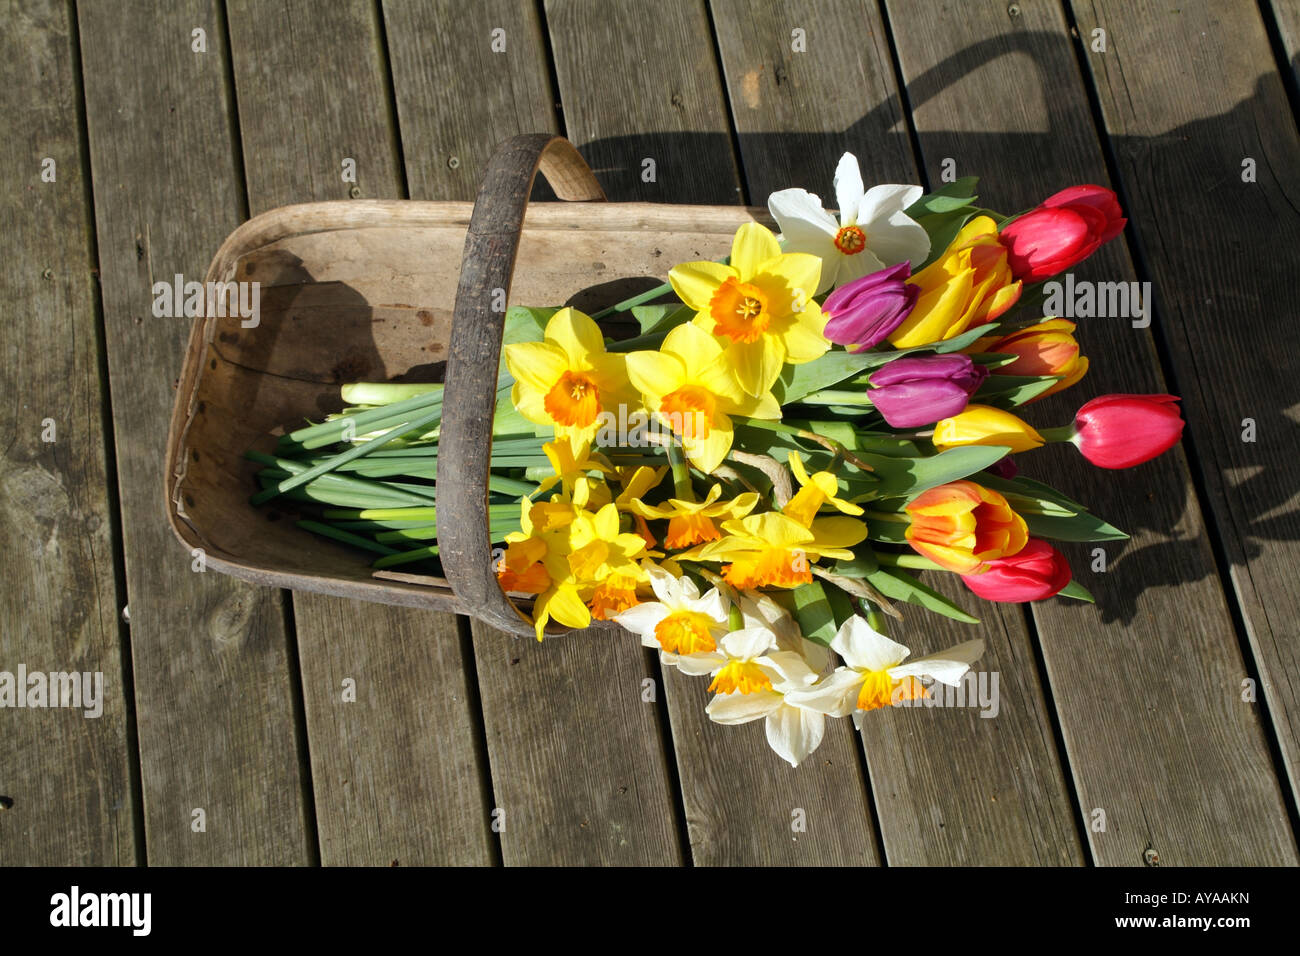 Spring Cut Flowers in a Wooden Garden Trug in an English Country ...